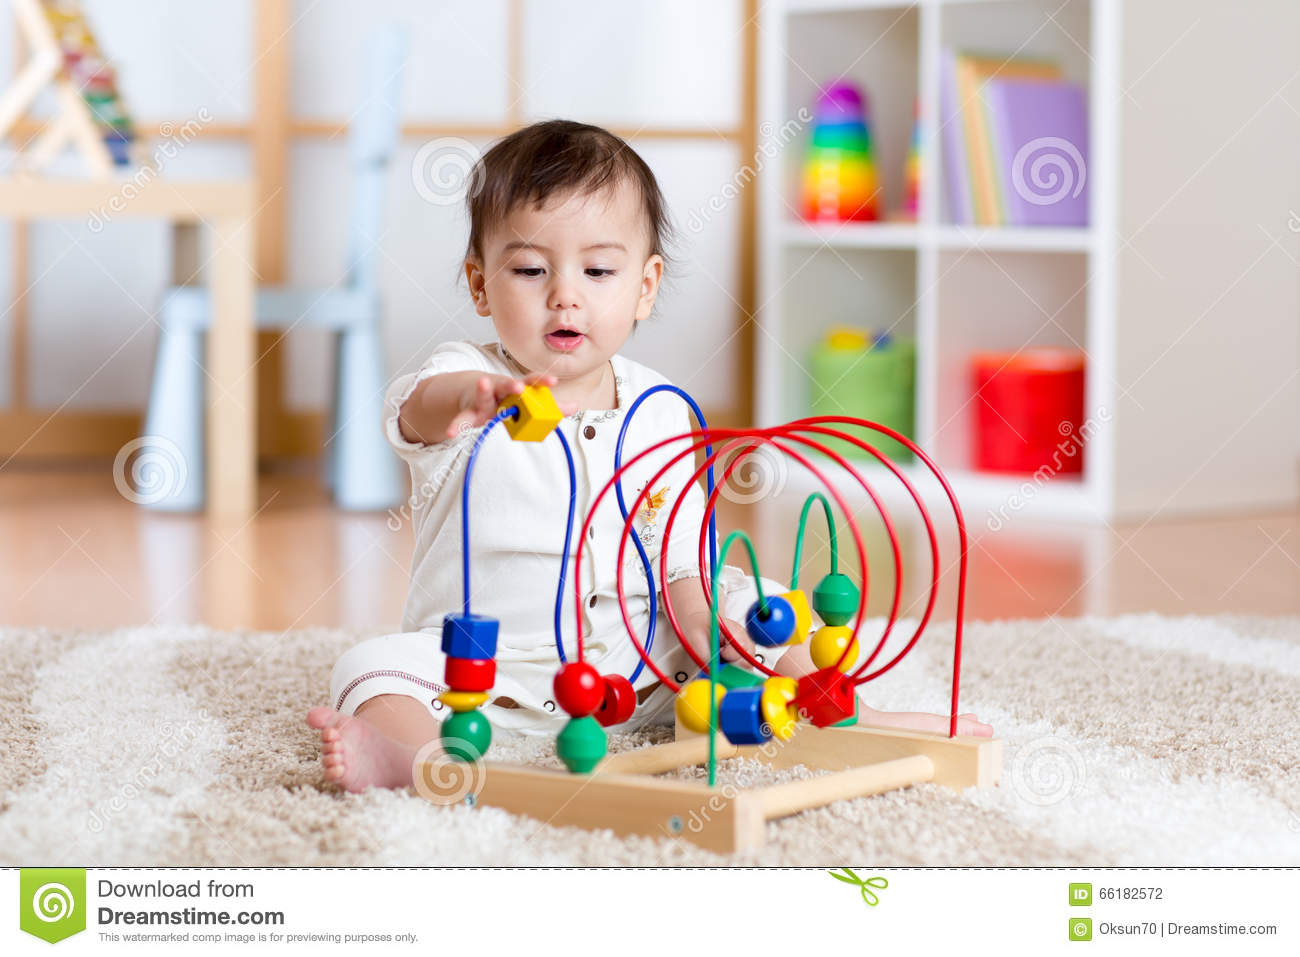 Toddler Girl Learning Toys : Baby girl playing with educational toy in nursery stock